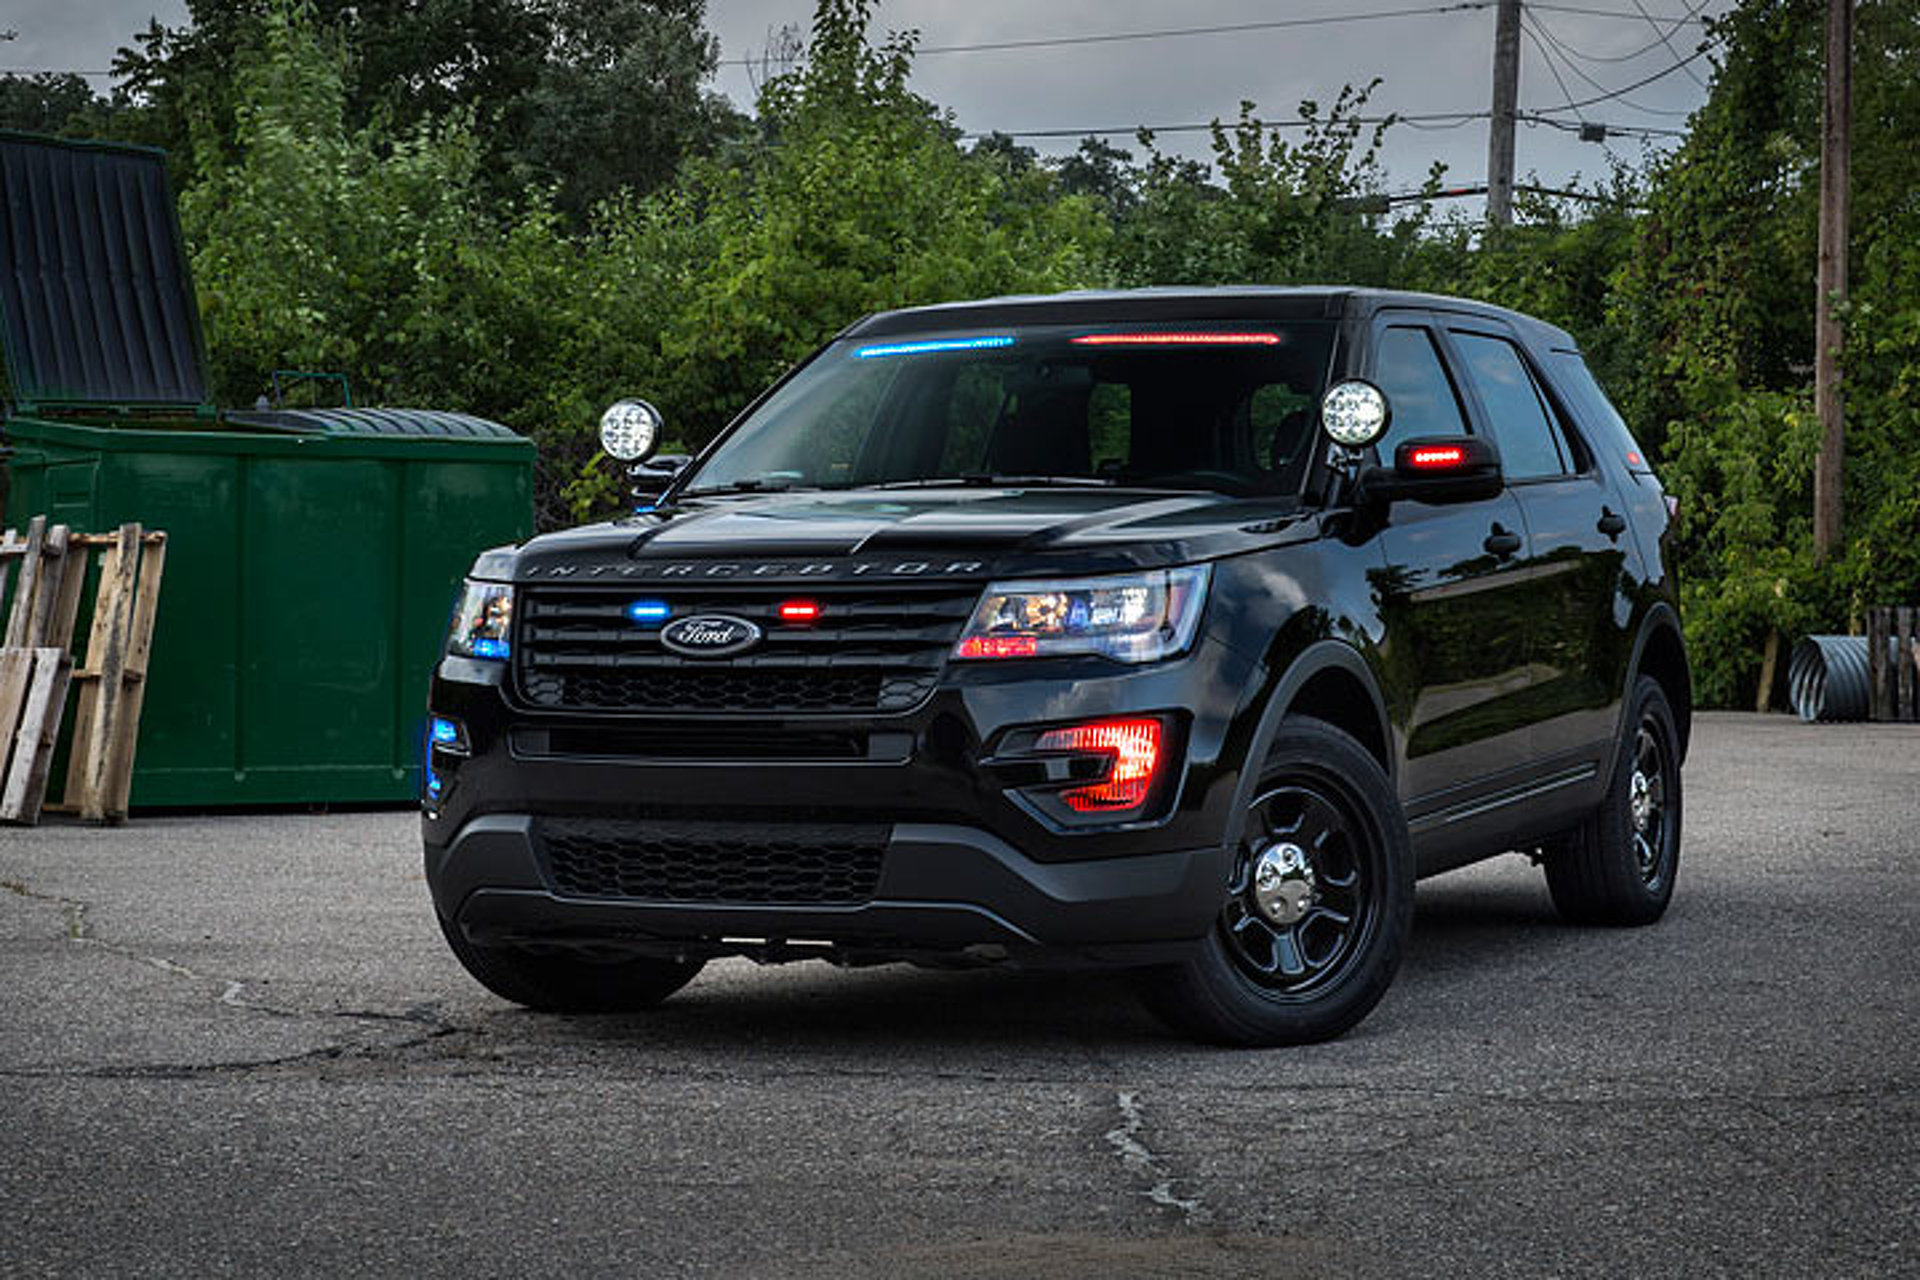 ford police interceptor utility   stealth